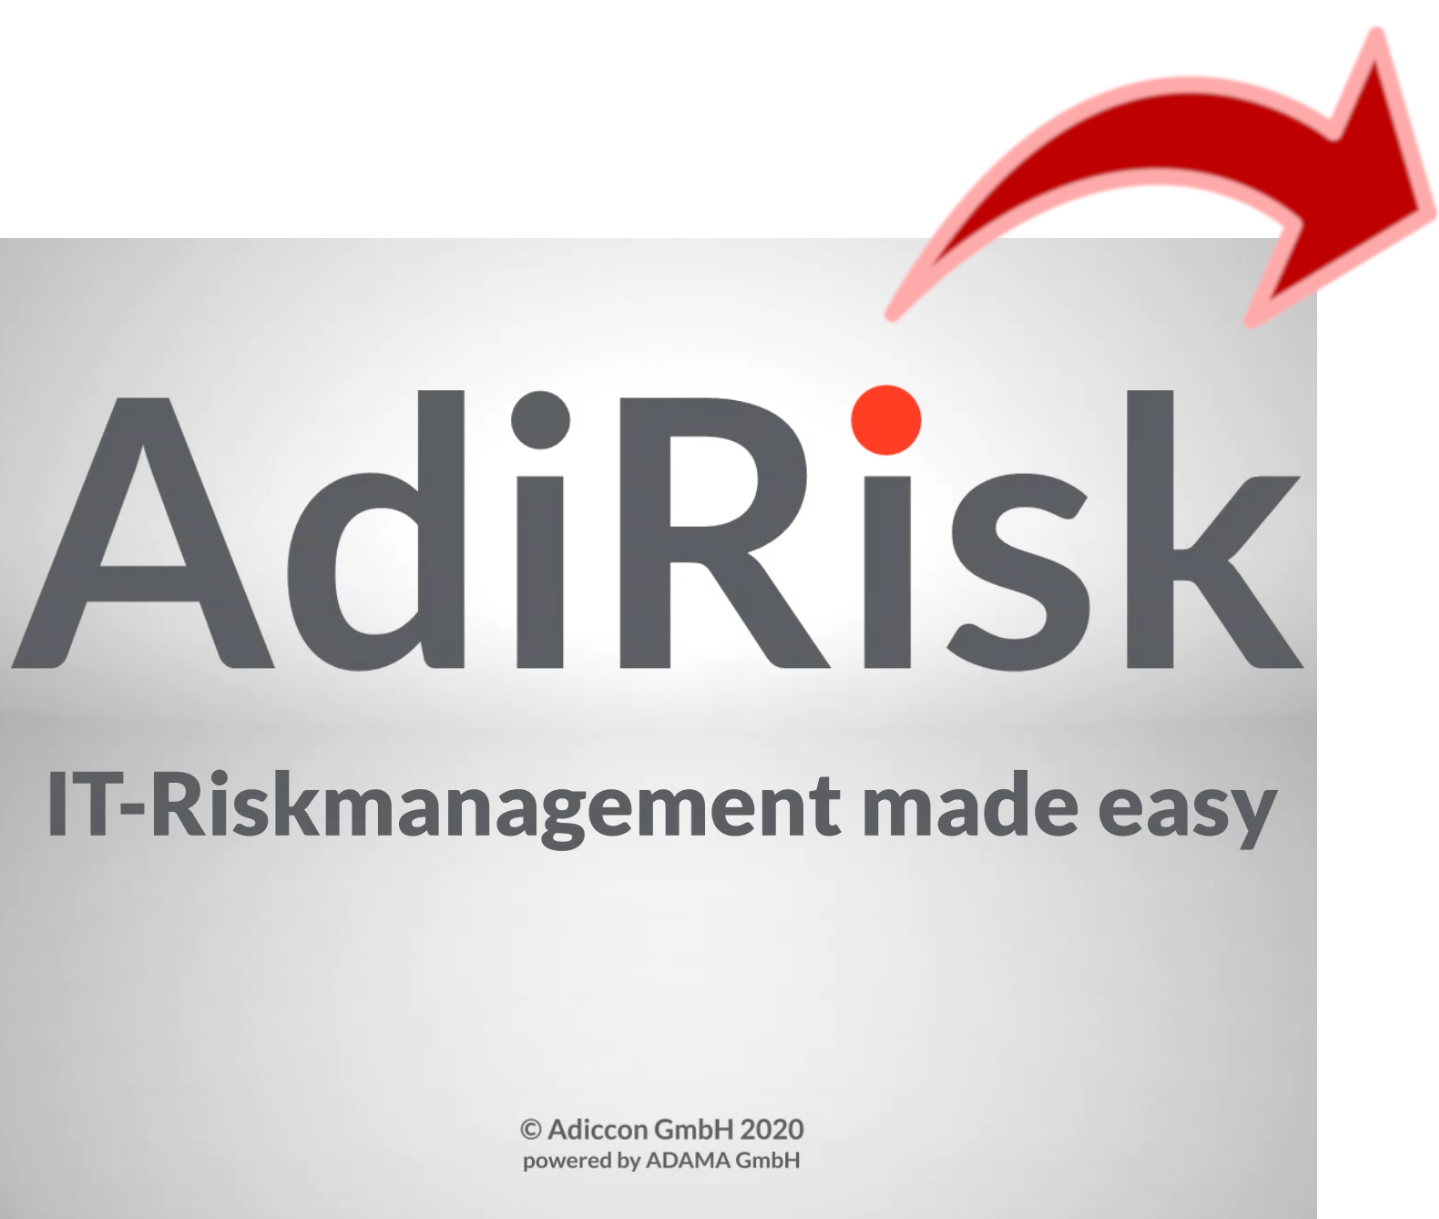 IT-Risikomanagement mit AdiRisk